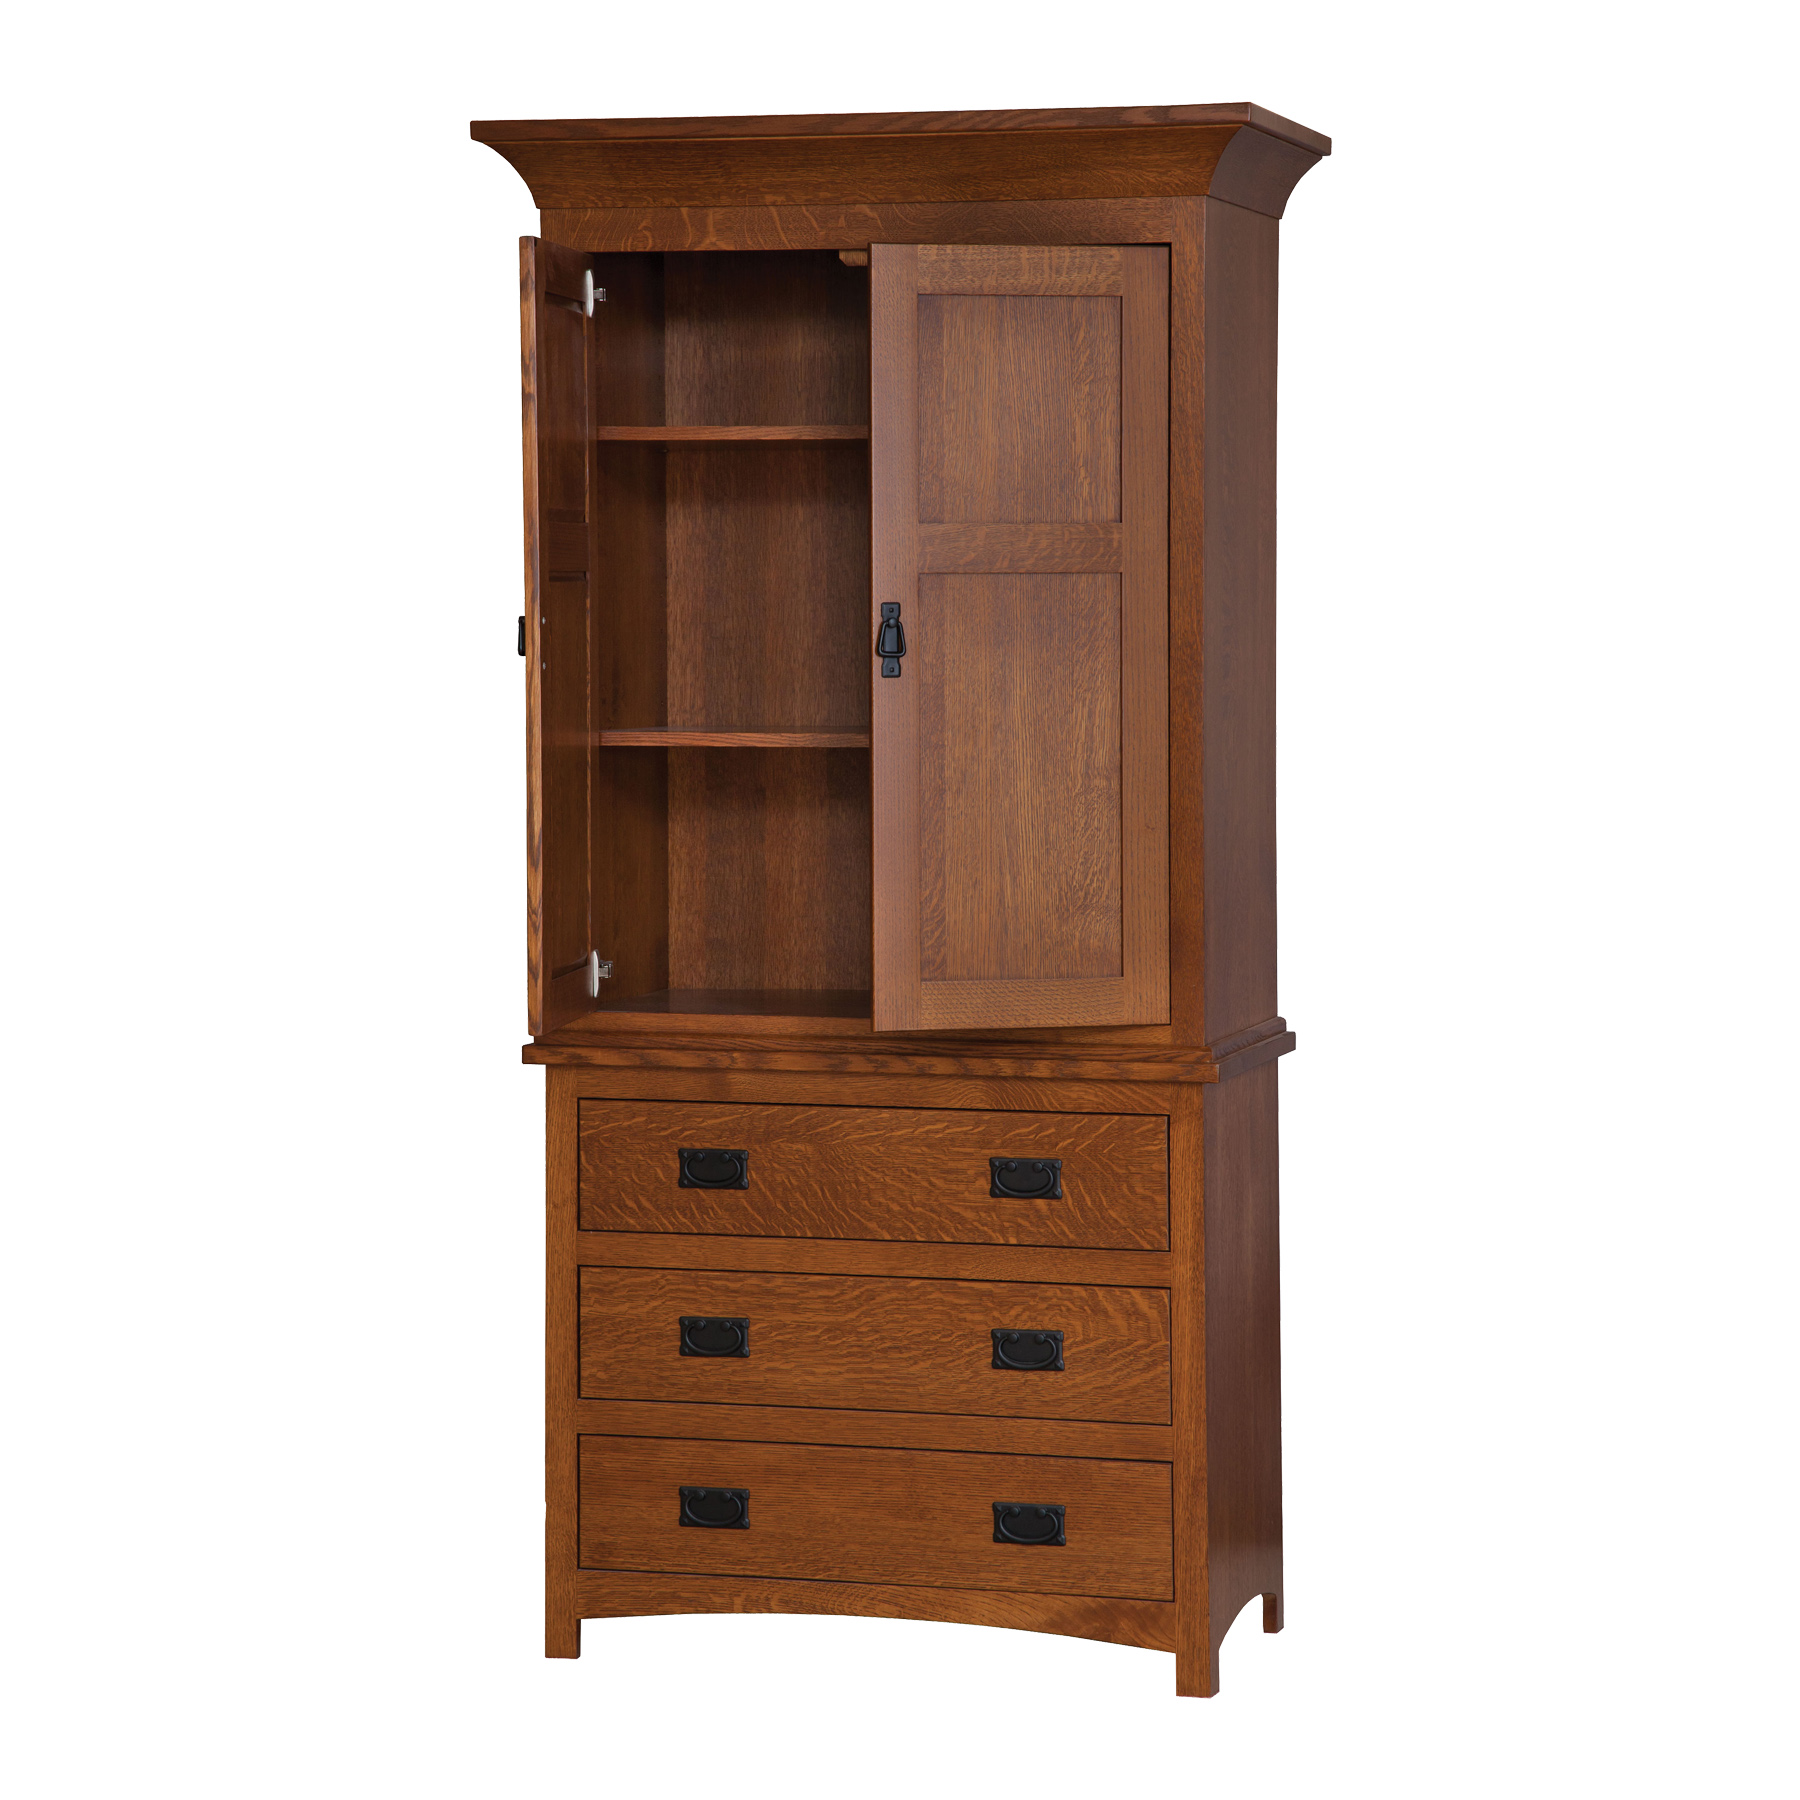 3 Drawer Armoire: Open